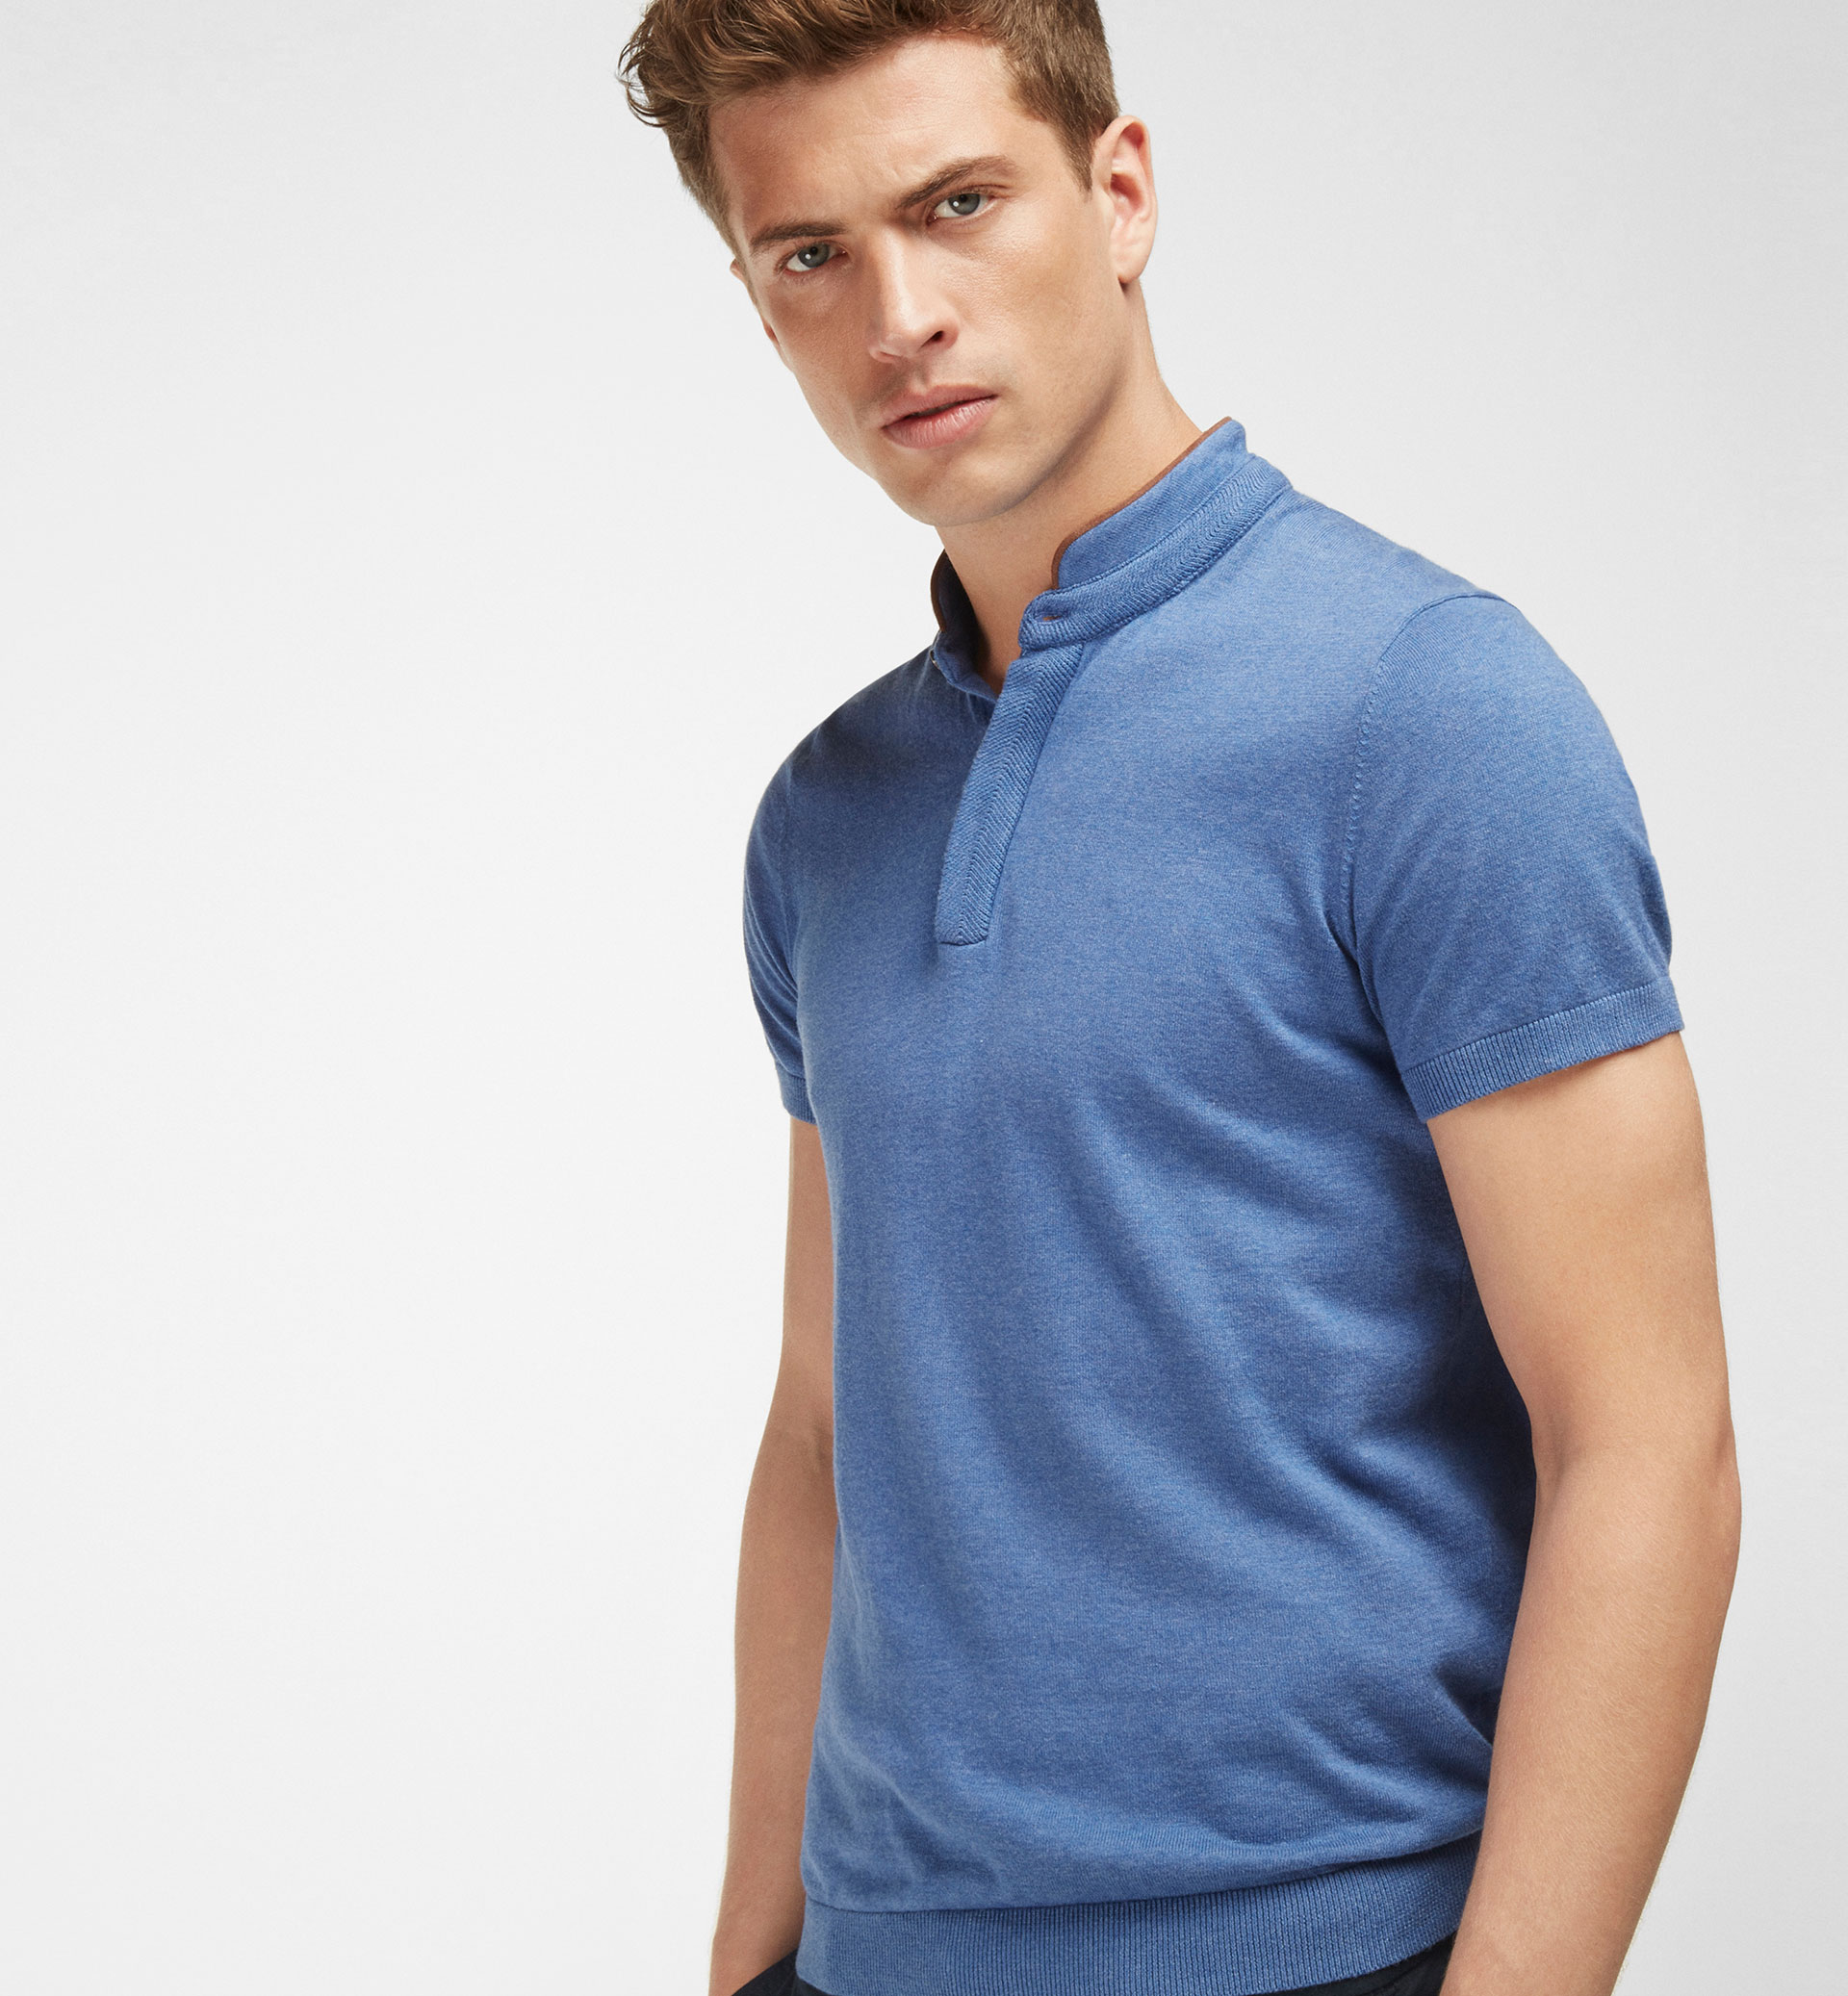 MANDARIN COLLAR TRICOT POLO SHIRT